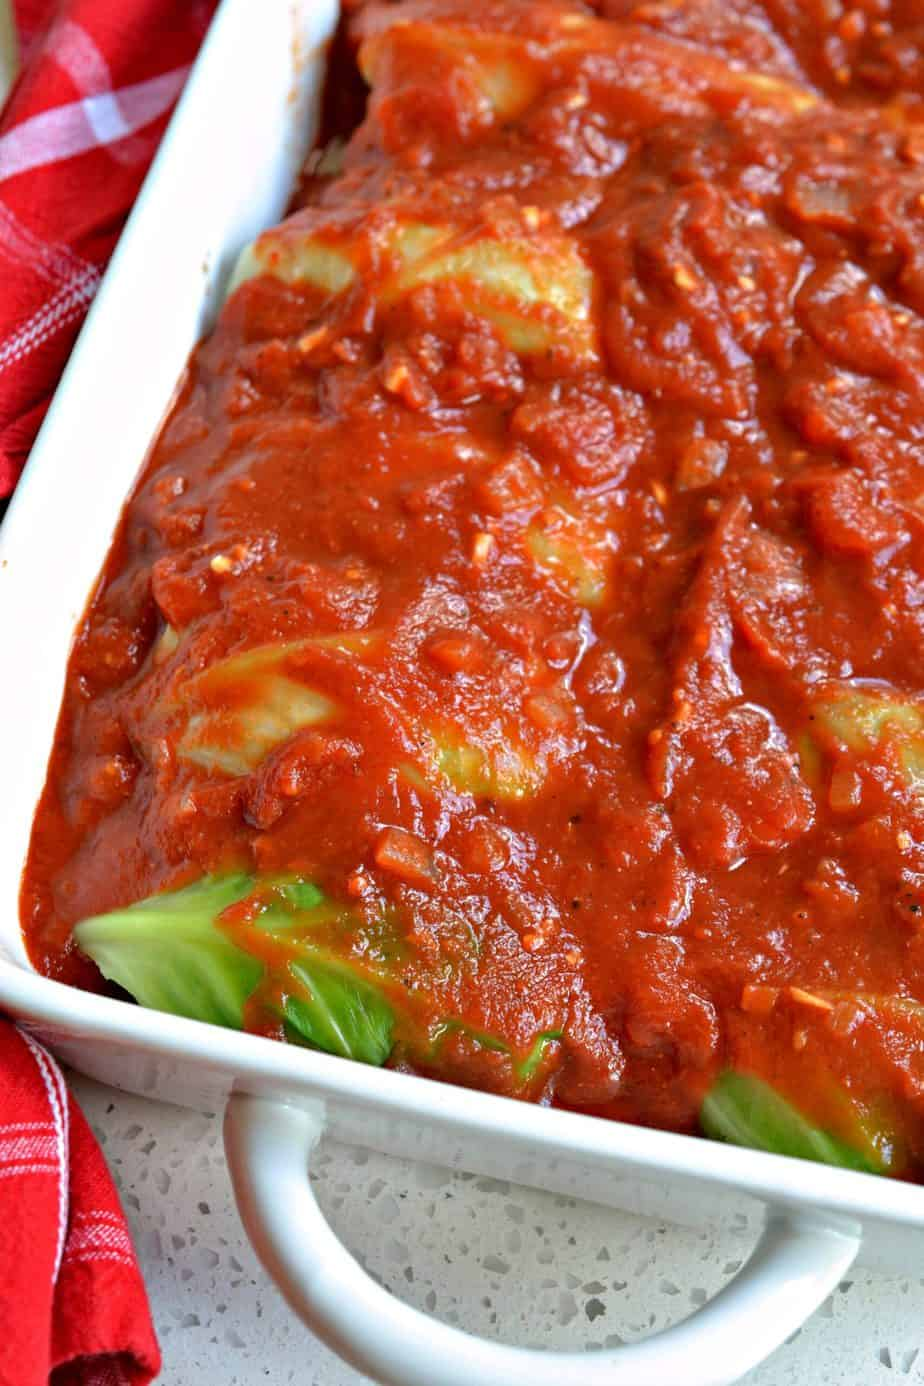 Here's how to make a classic Cabbage Rolls recipe, the perfect comfort food!